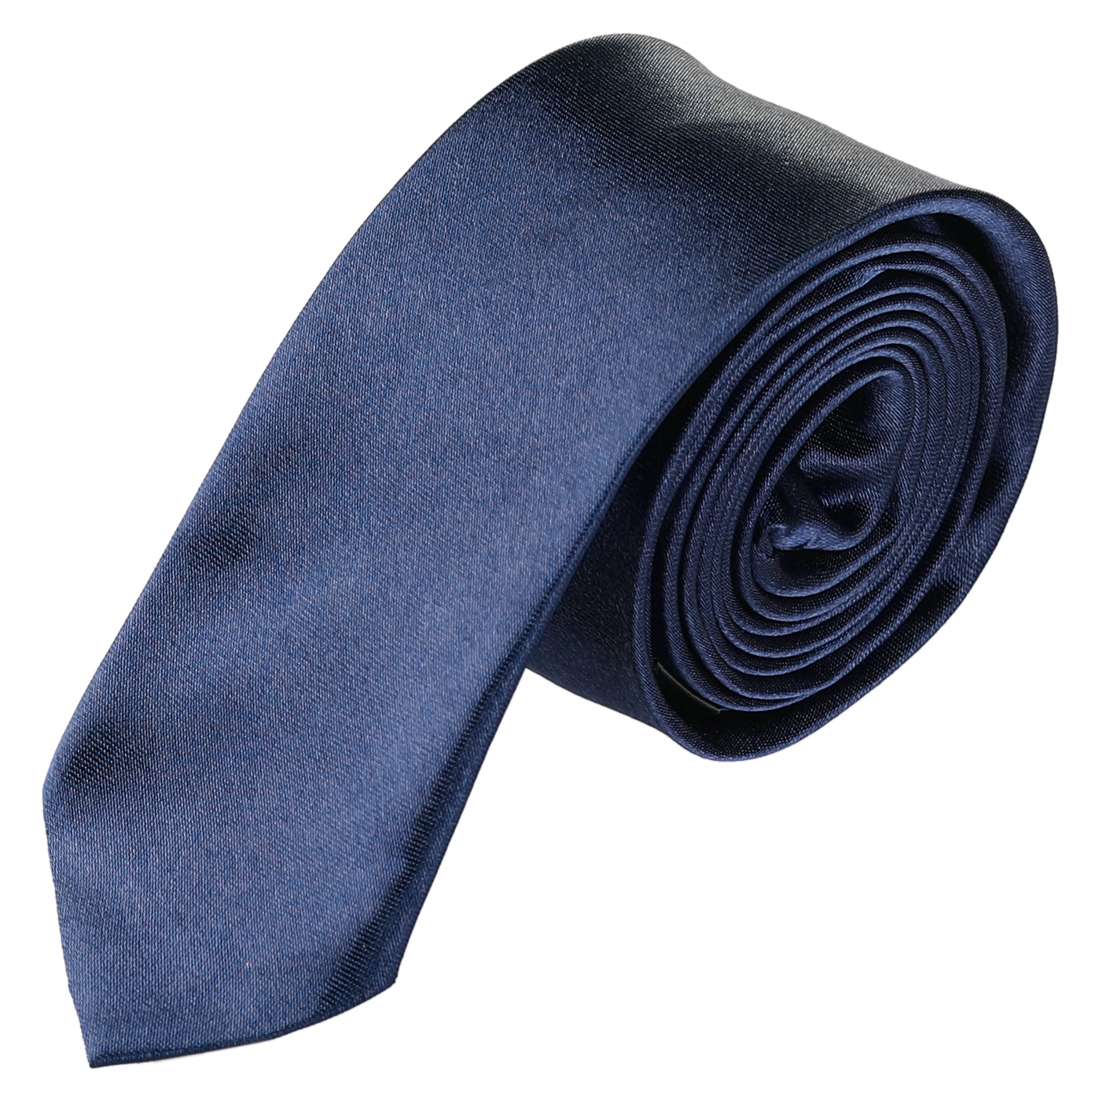 Men Neckwear Bussiness Party Adjustable Clothes Decor Narrow Tie Gray